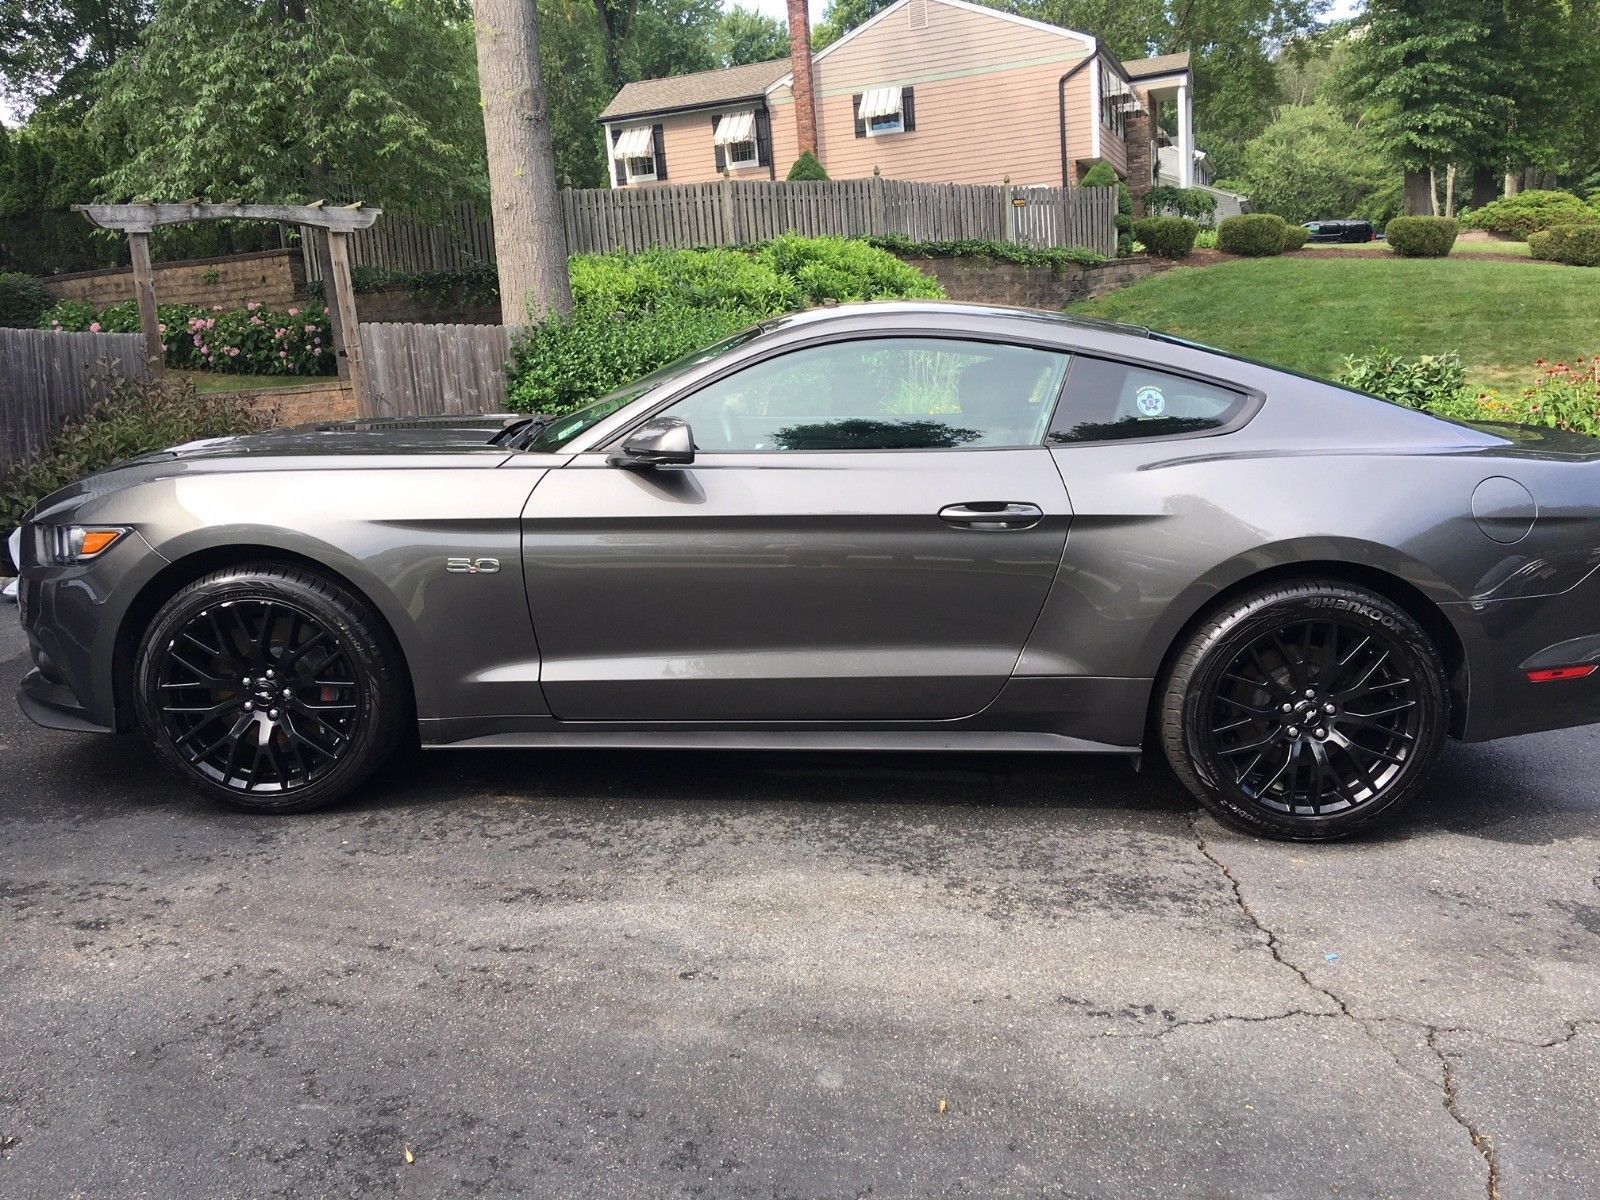 2015 Mustang Gt Pictures Amazing 2015 Ford Mustang Gt 2015 Mustang Gt 5 0l Premium Coupe 2018